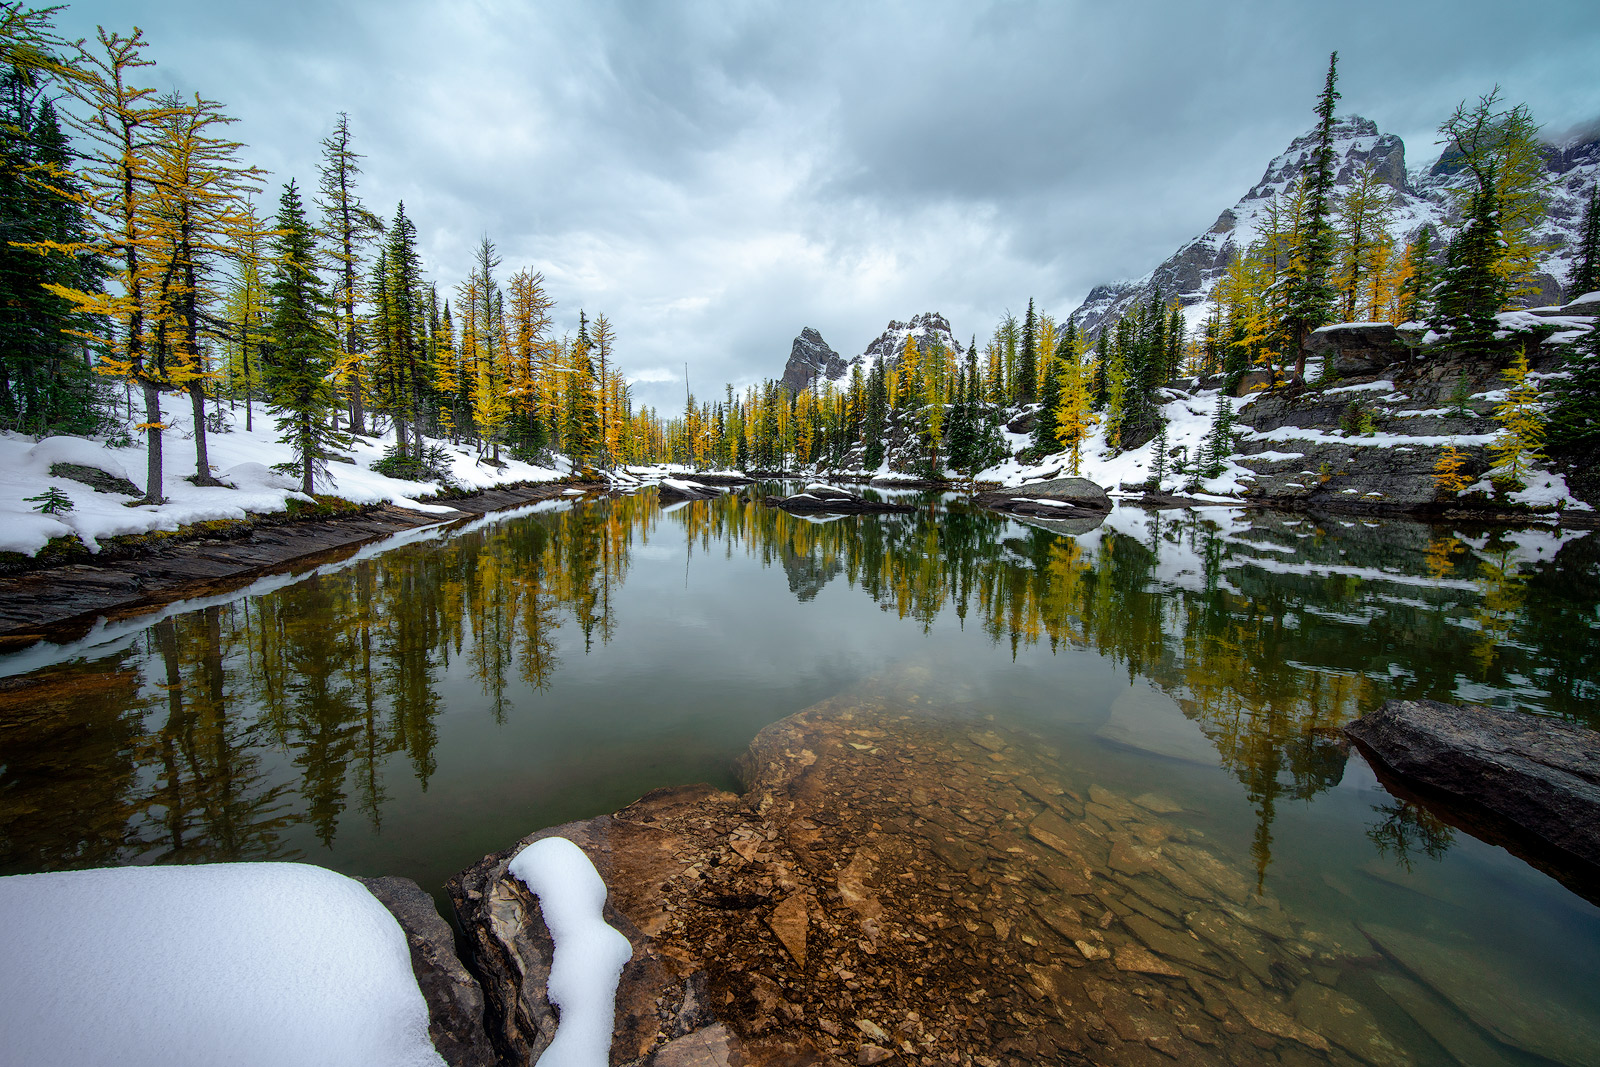 We had just completed our 7 miles trek to Lake O'Hara and made our way up to the plateau, which pretty much exhausted all three...